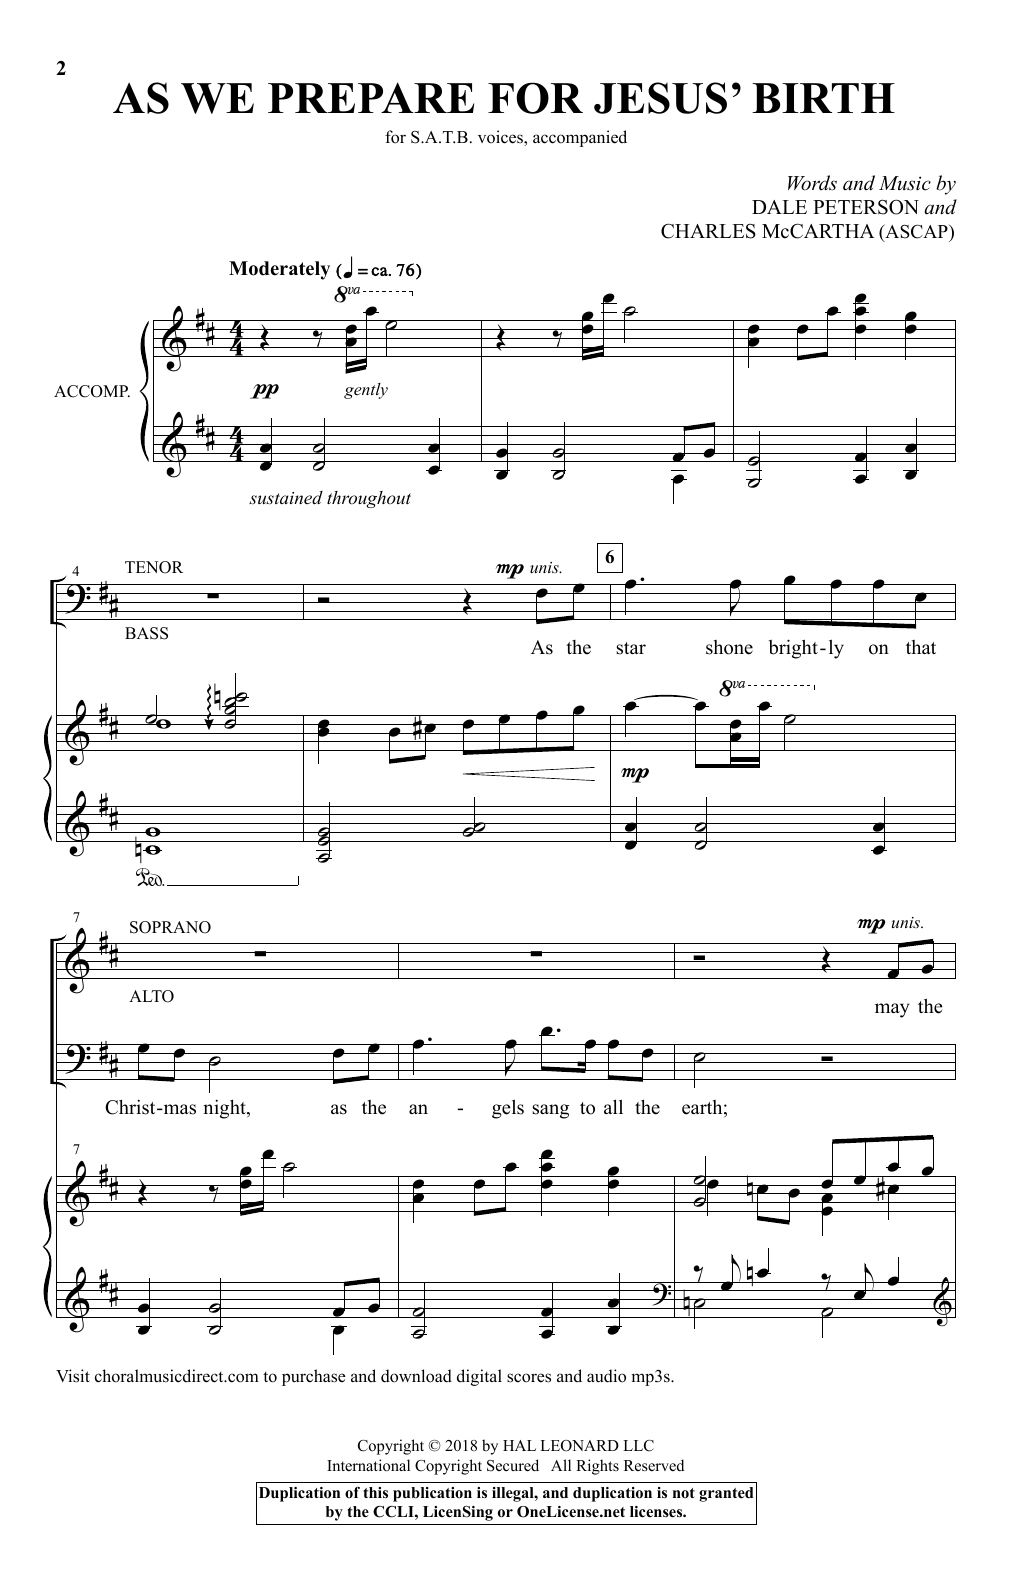 Charles McCartha As We Prepare For Jesus' Birth sheet music notes and chords. Download Printable PDF.